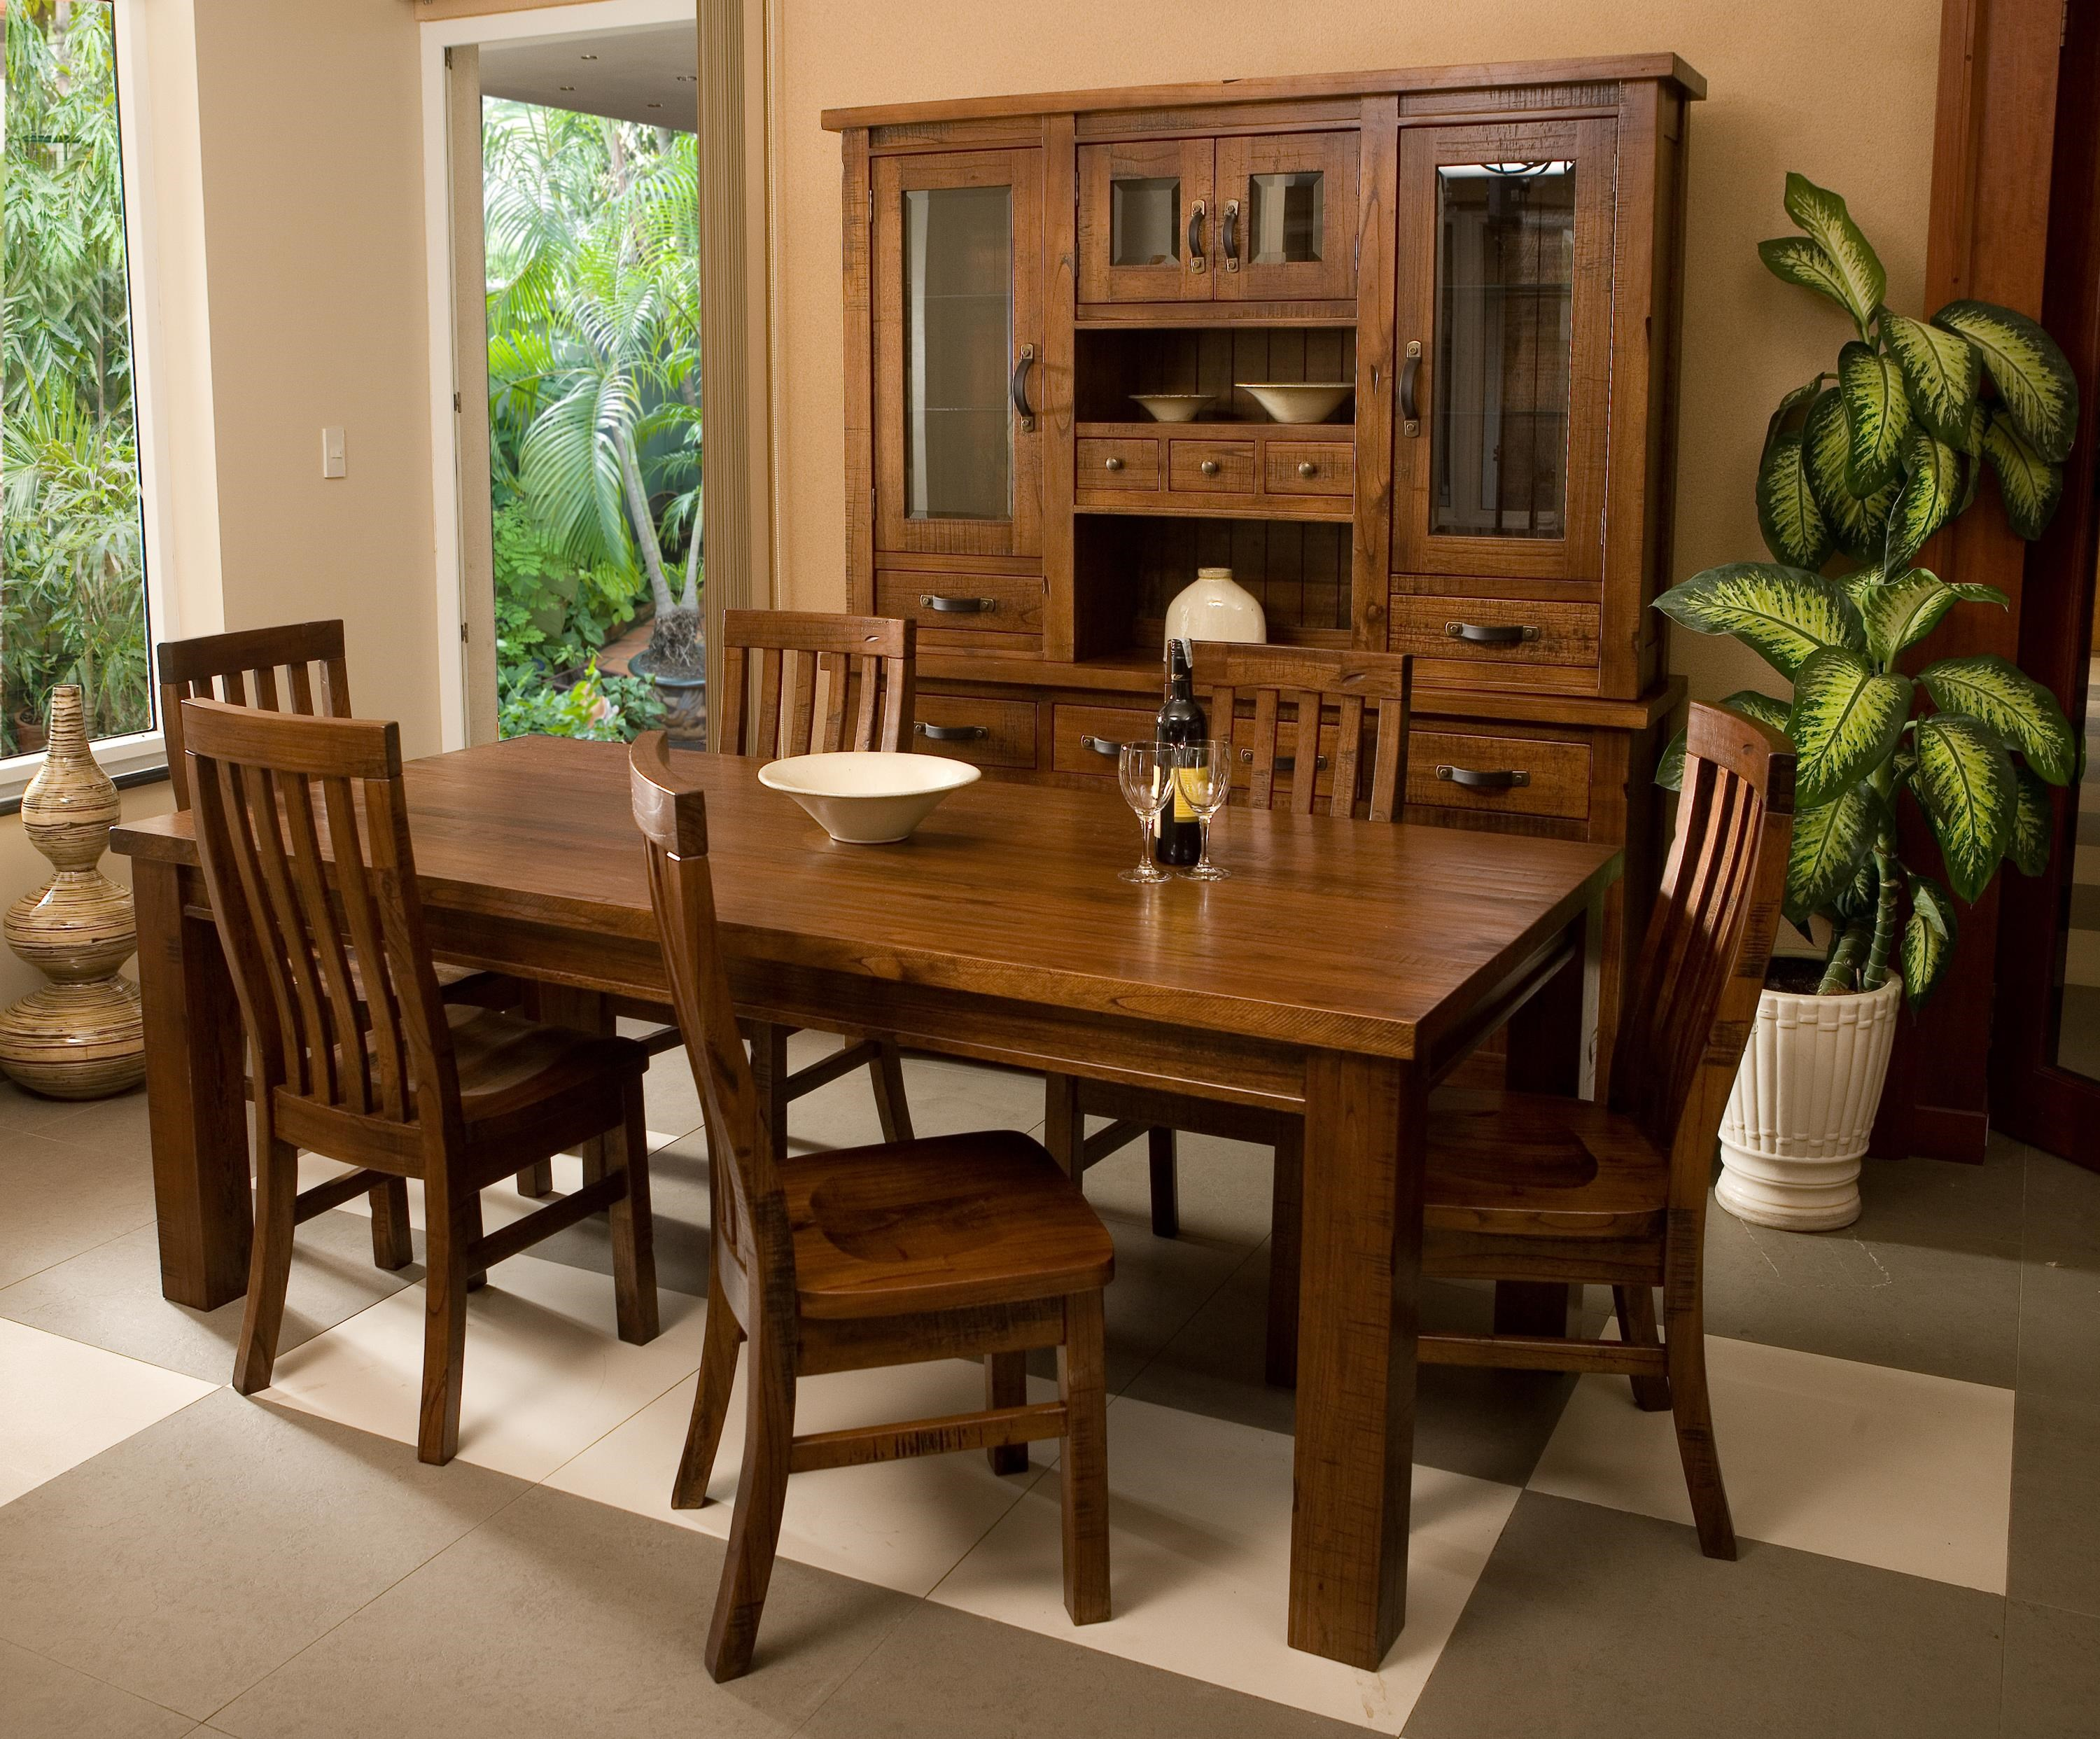 Outback Mission Style Seven Piece Dining Set By Hillsdale